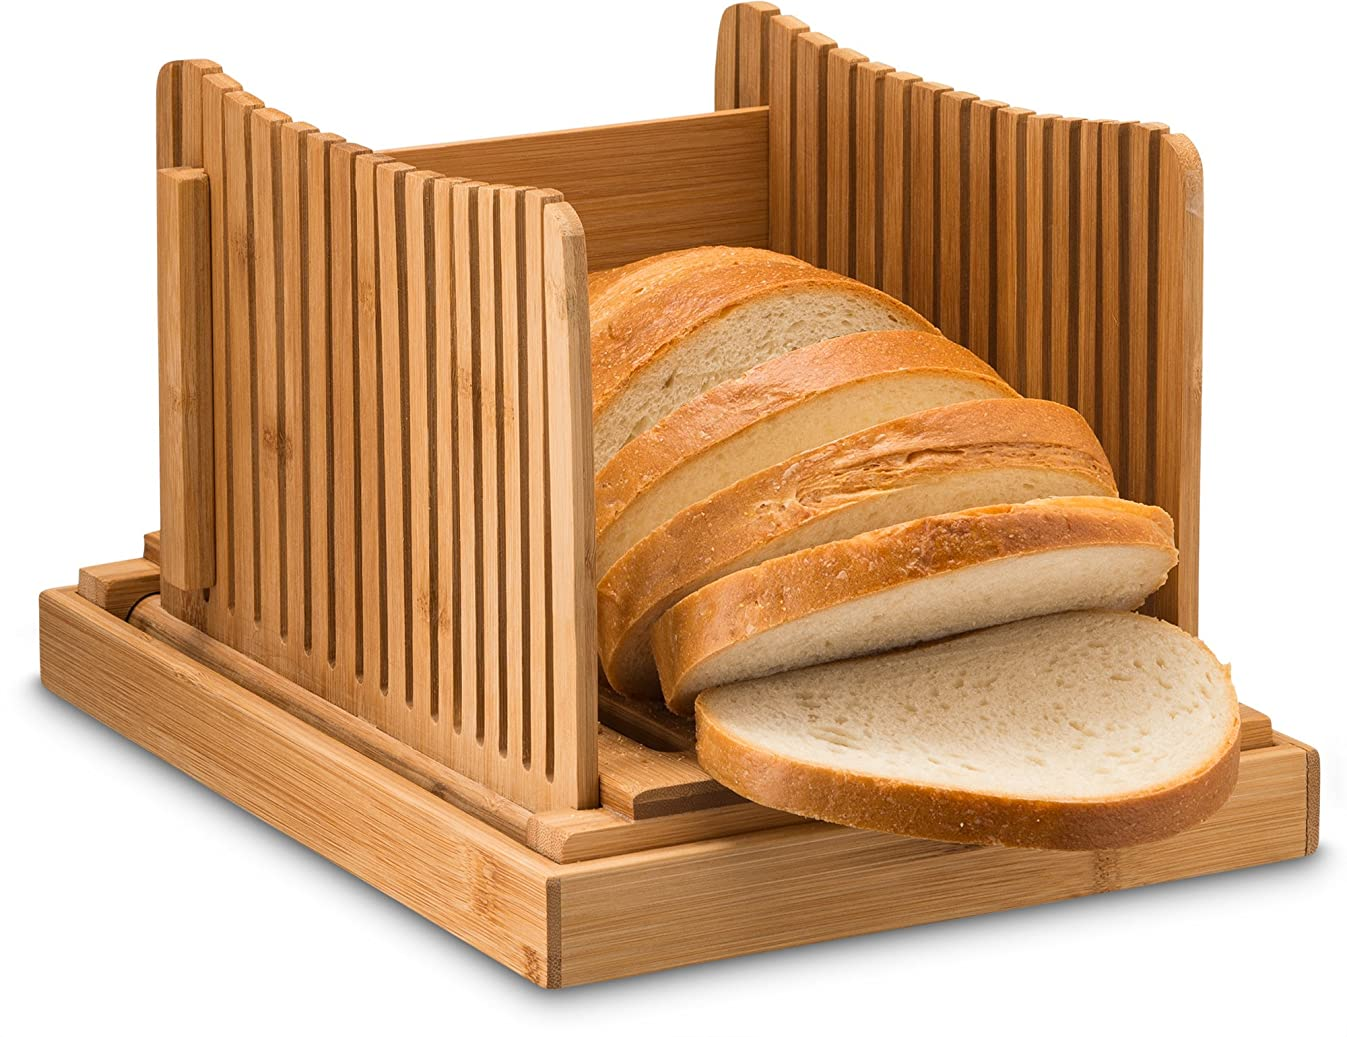 Bambusi Bread Slicer Cutting Guide - Bamboo Bread Cutter for Homemade Bread, Loaf Cakes, Bagels | Foldable and Compact with Crumbs Tray | Works Great with 10